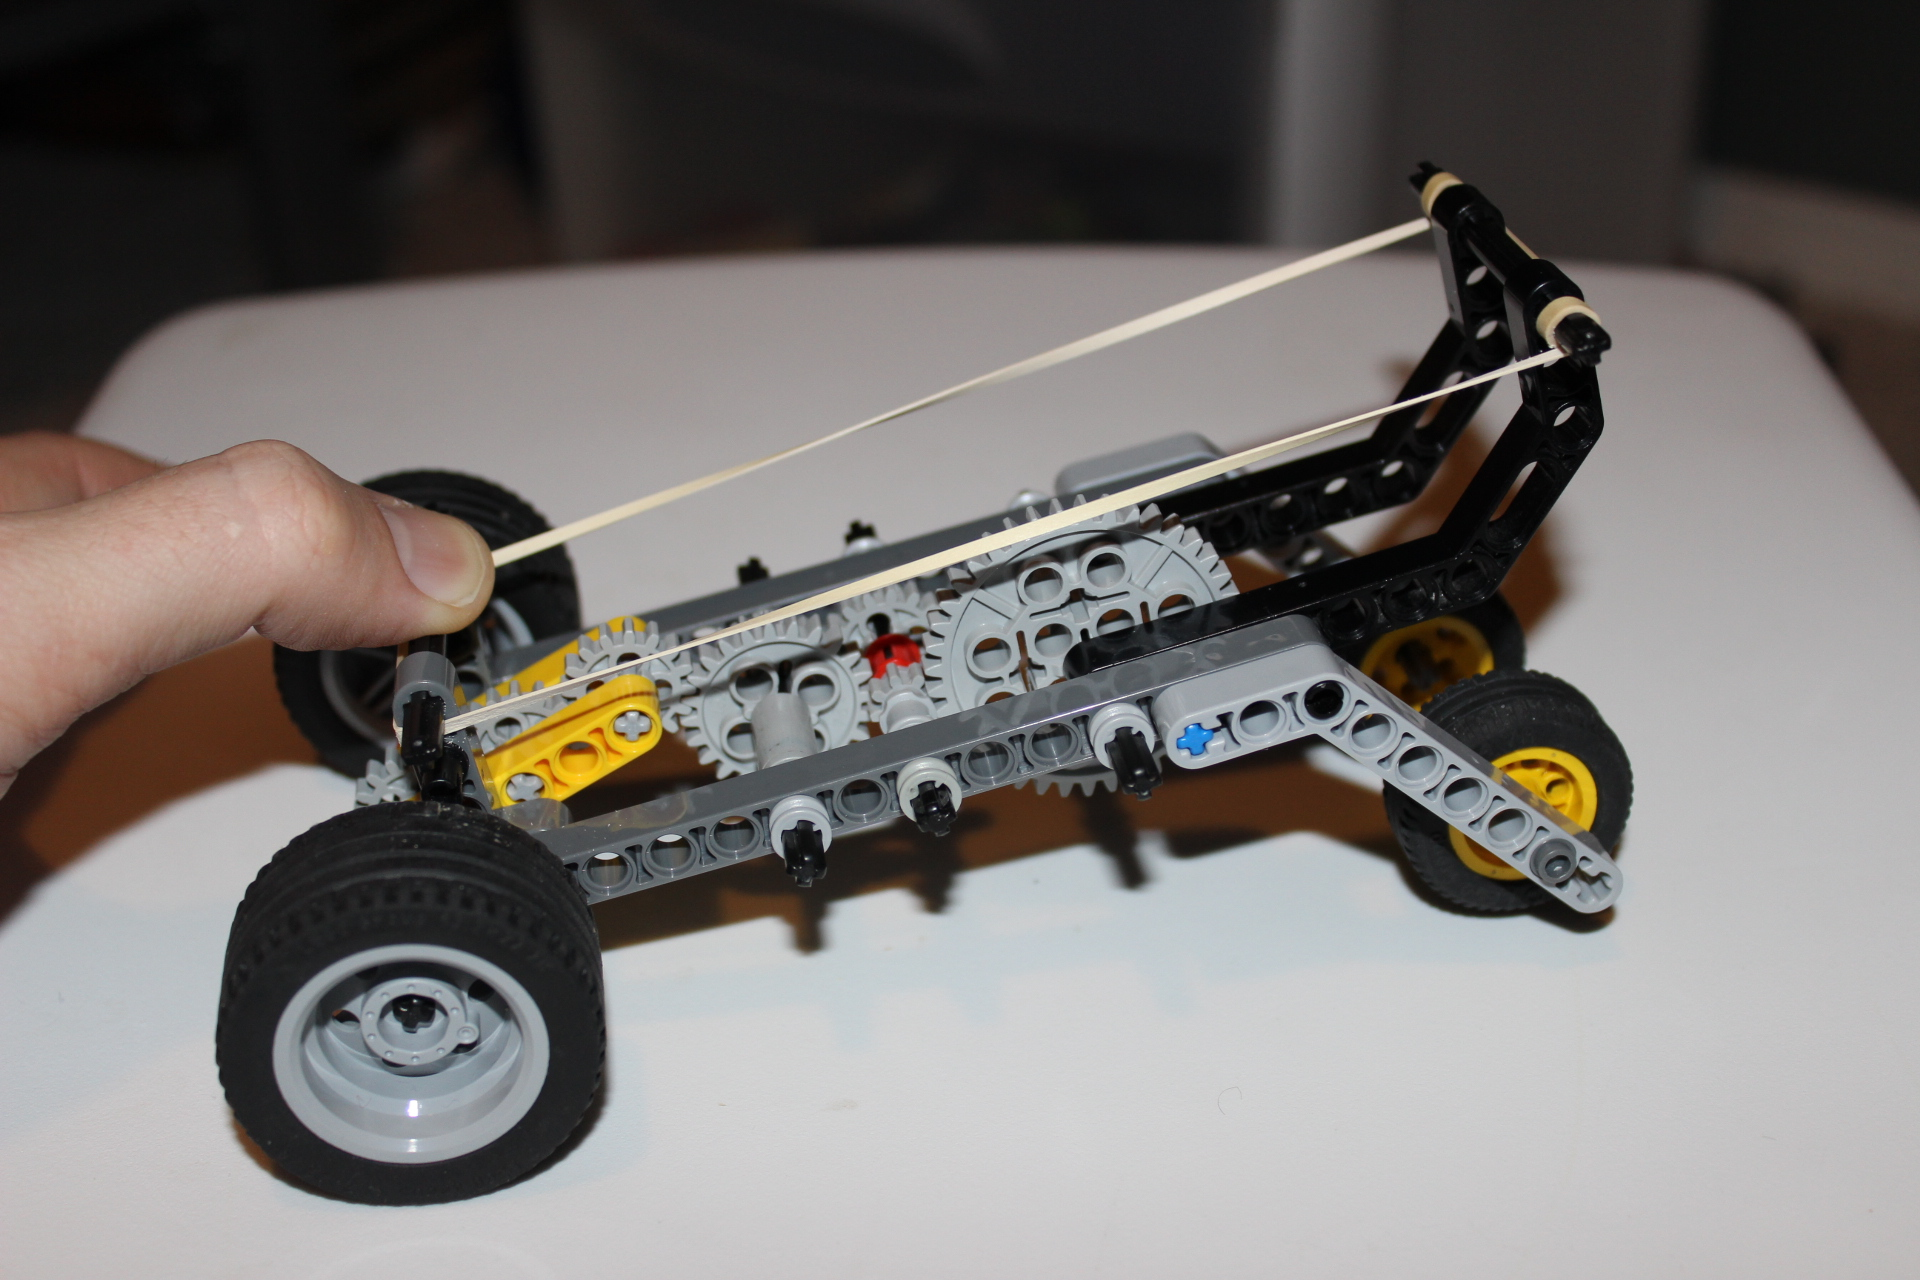 Lever-pull Wind-up LEGO Car - side view lever pulled